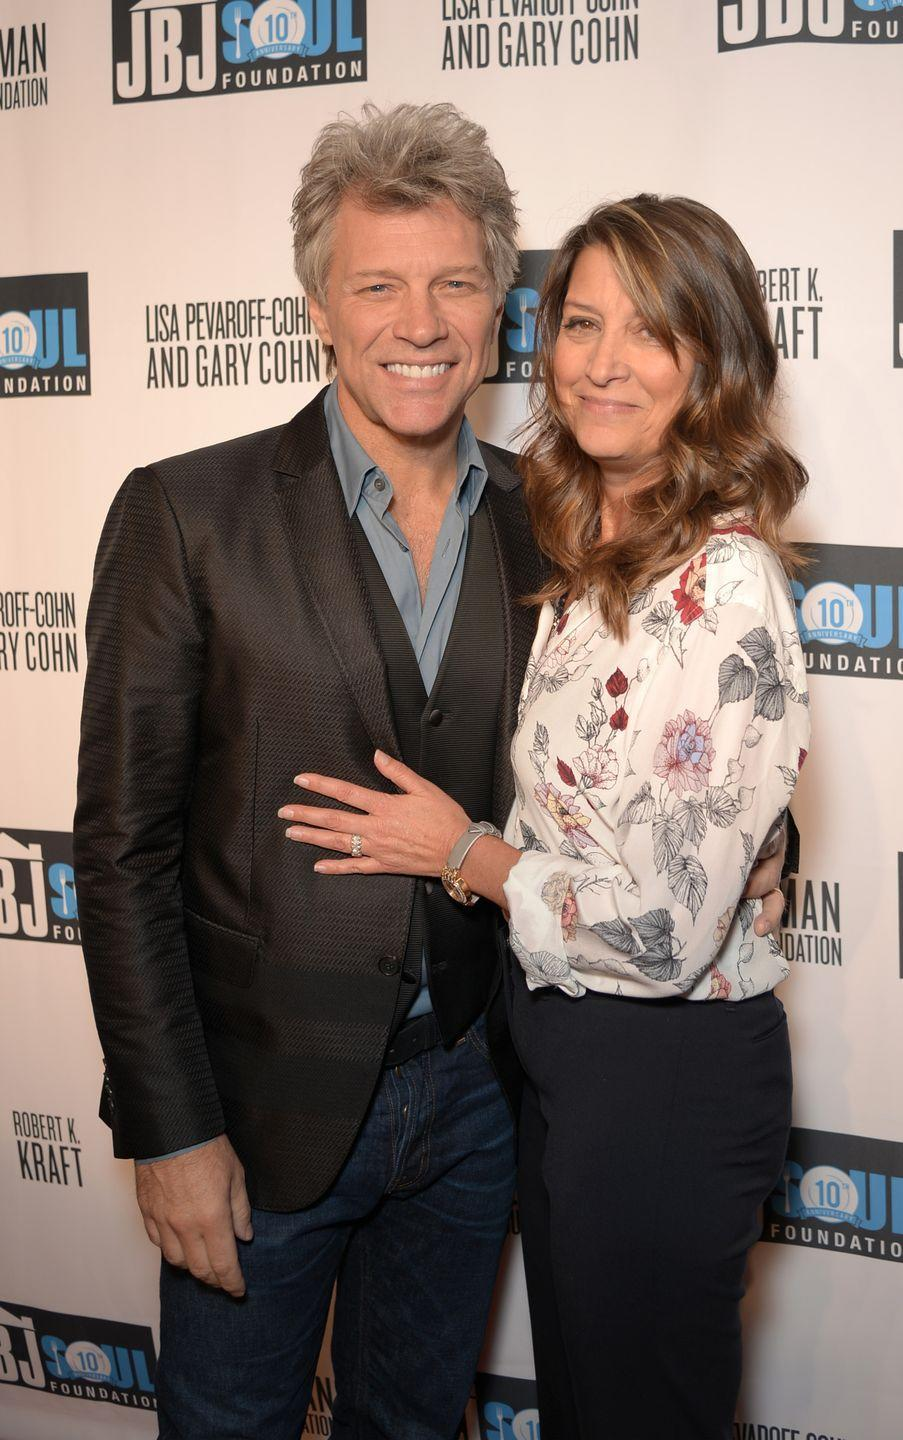 <p>Bon Jovi married Dorothea Hurley, his high school sweetheart, in 1989. The pair is still happily married with four children.</p>